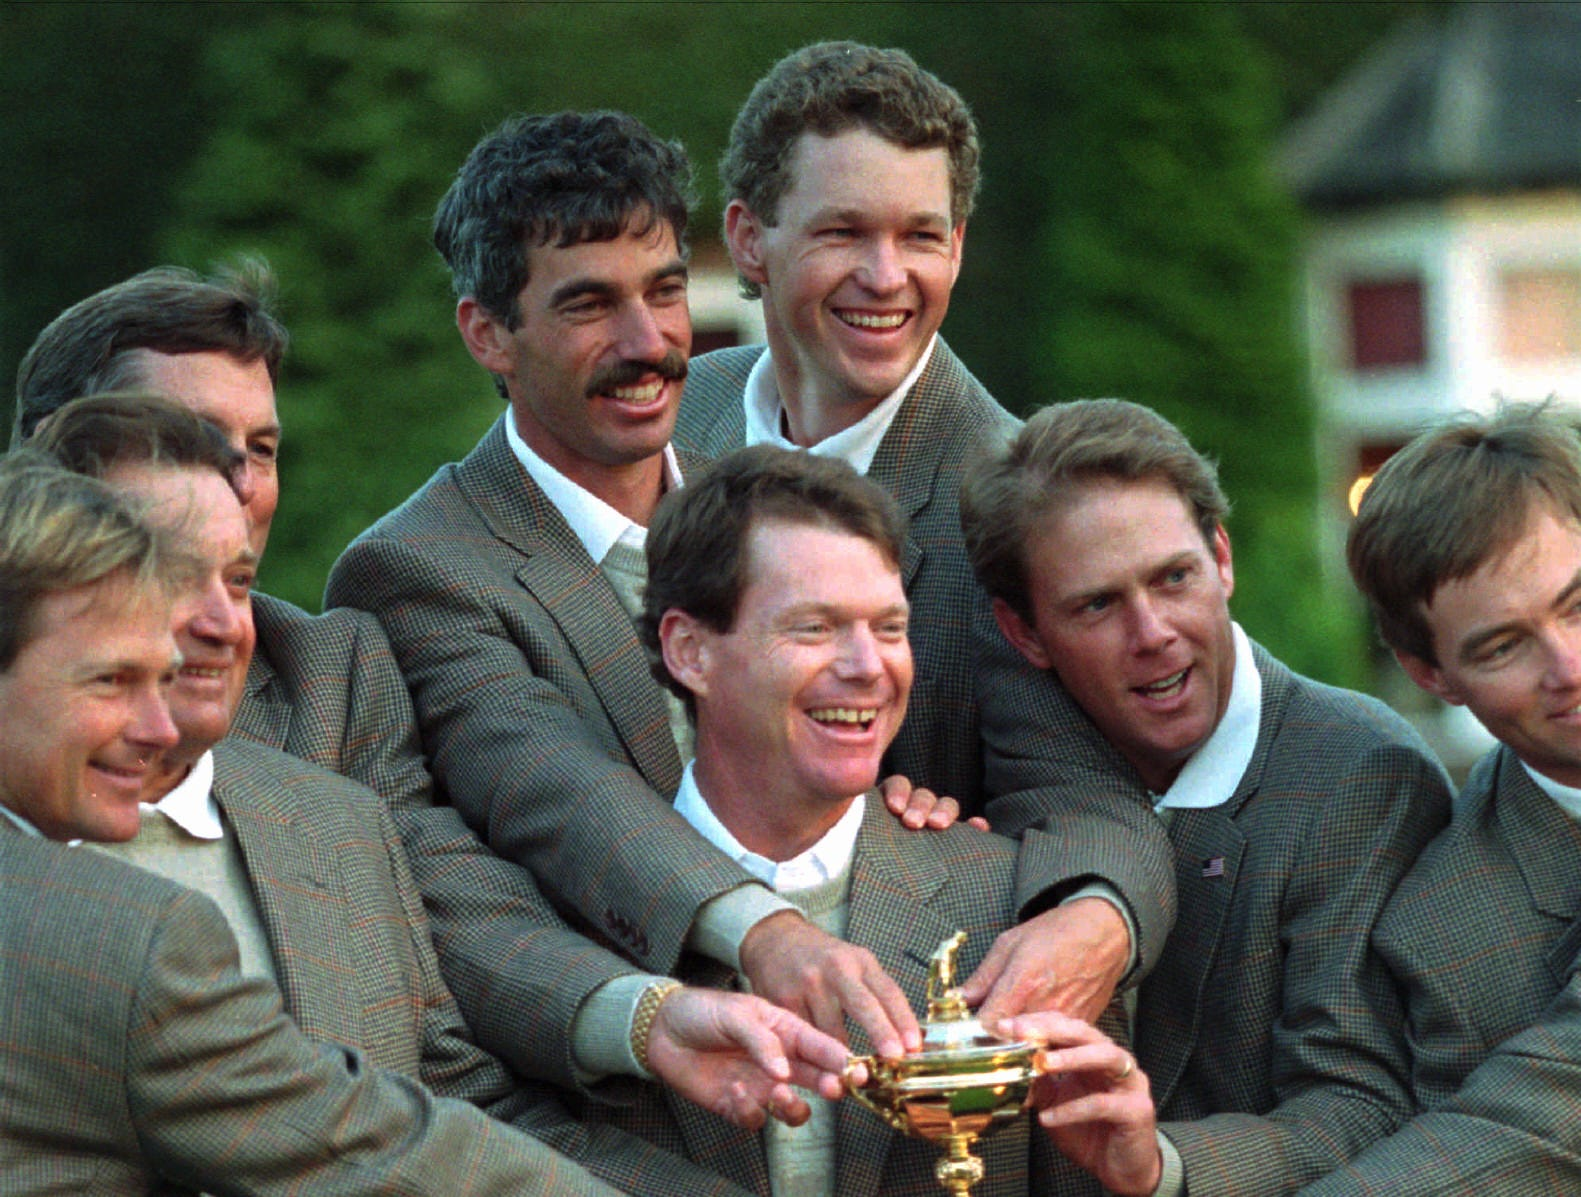 Team USA, 1993: Captain Tom Watson poses with his team and the Ryder Cup after defeating Europe 15-13.